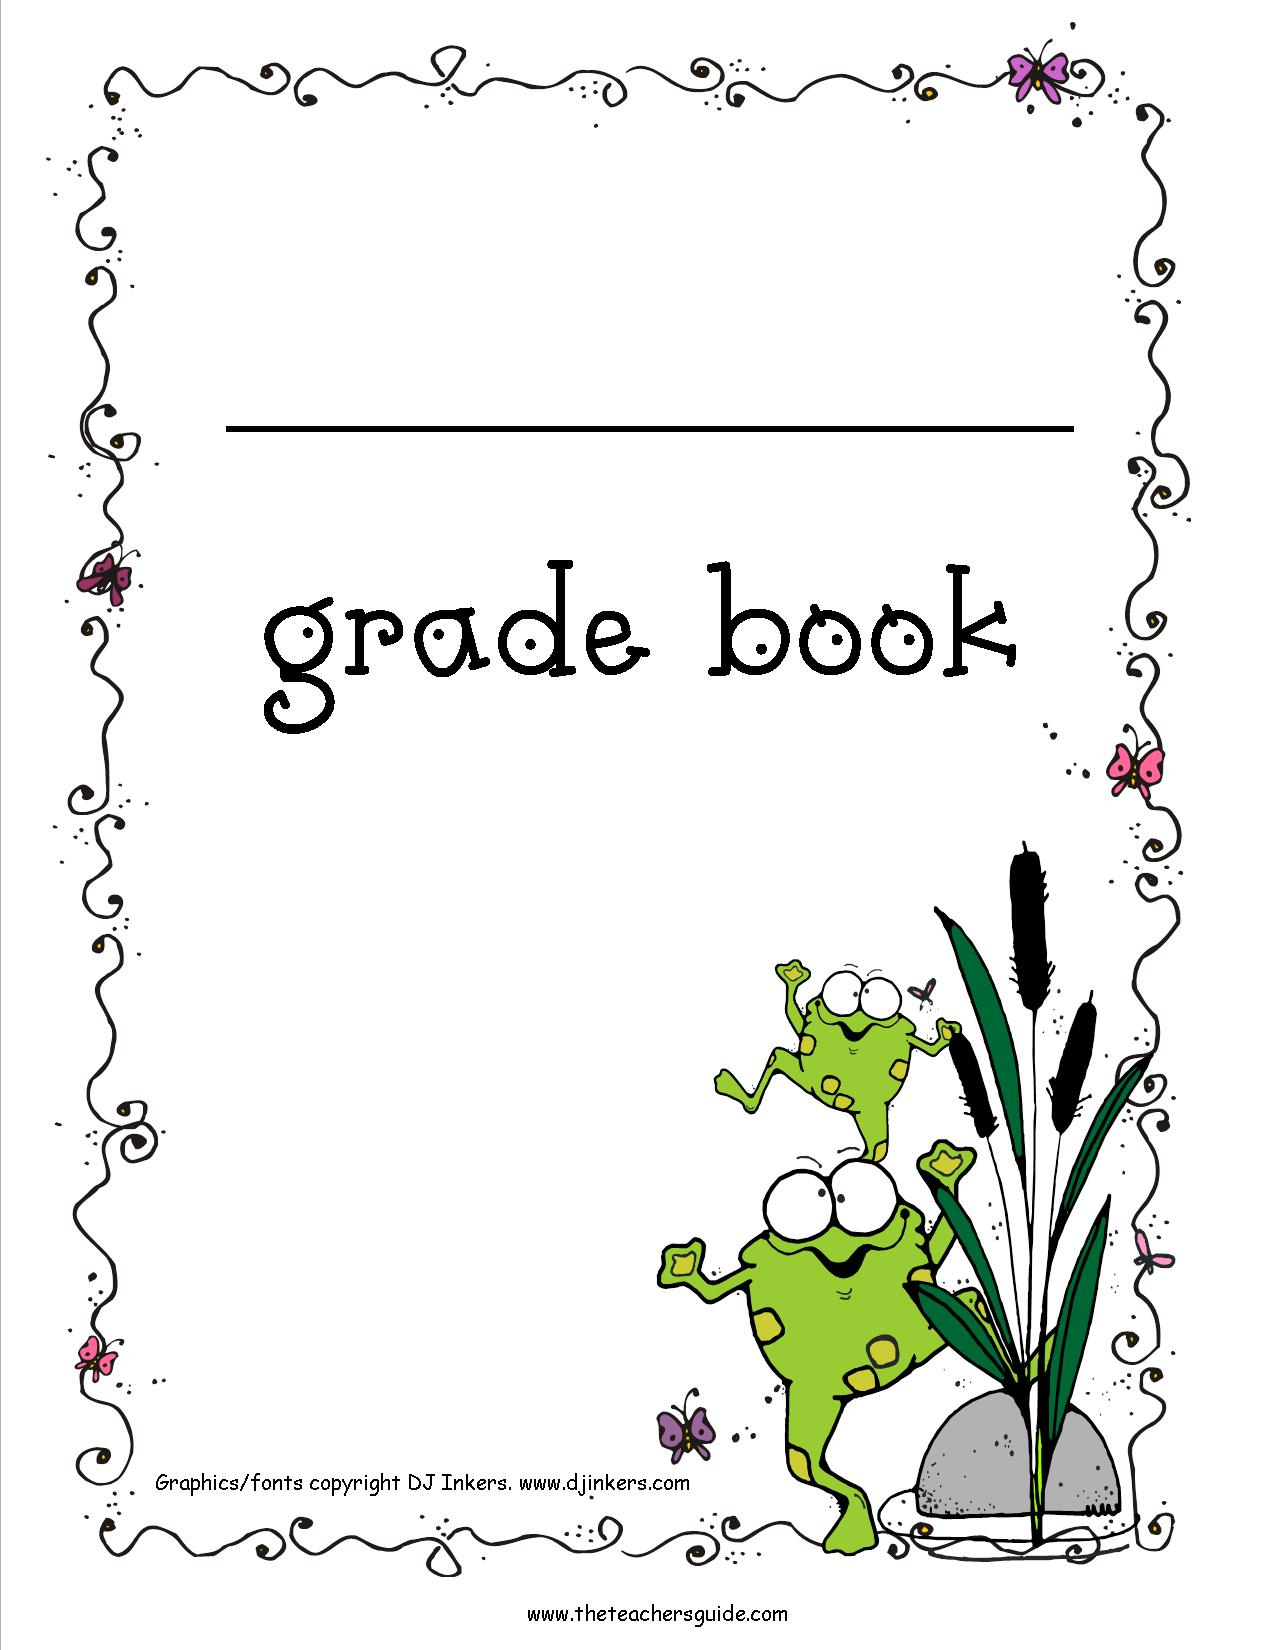 Free Printable Grade Books - Free Printable Grade Sheet